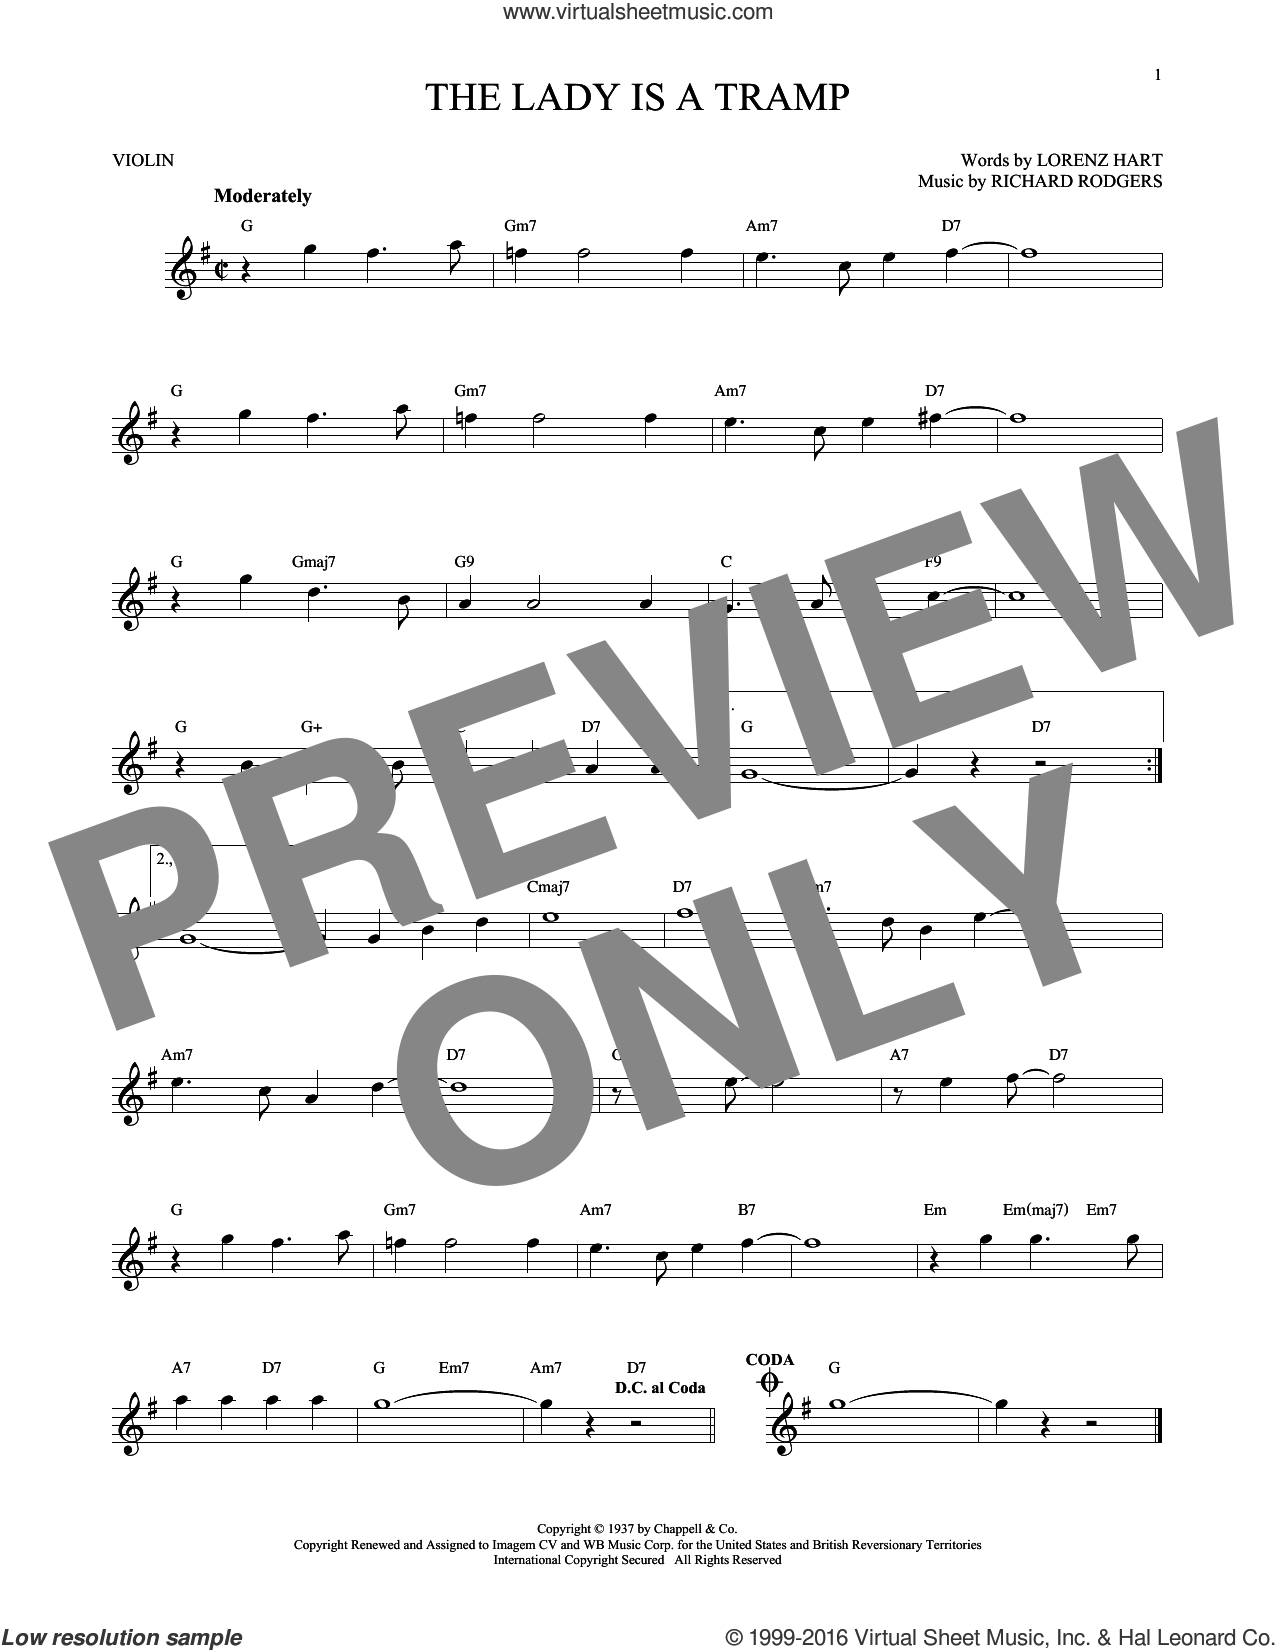 The Lady Is A Tramp sheet music for violin solo by Rodgers & Hart, Lorenz Hart and Richard Rodgers, intermediate skill level